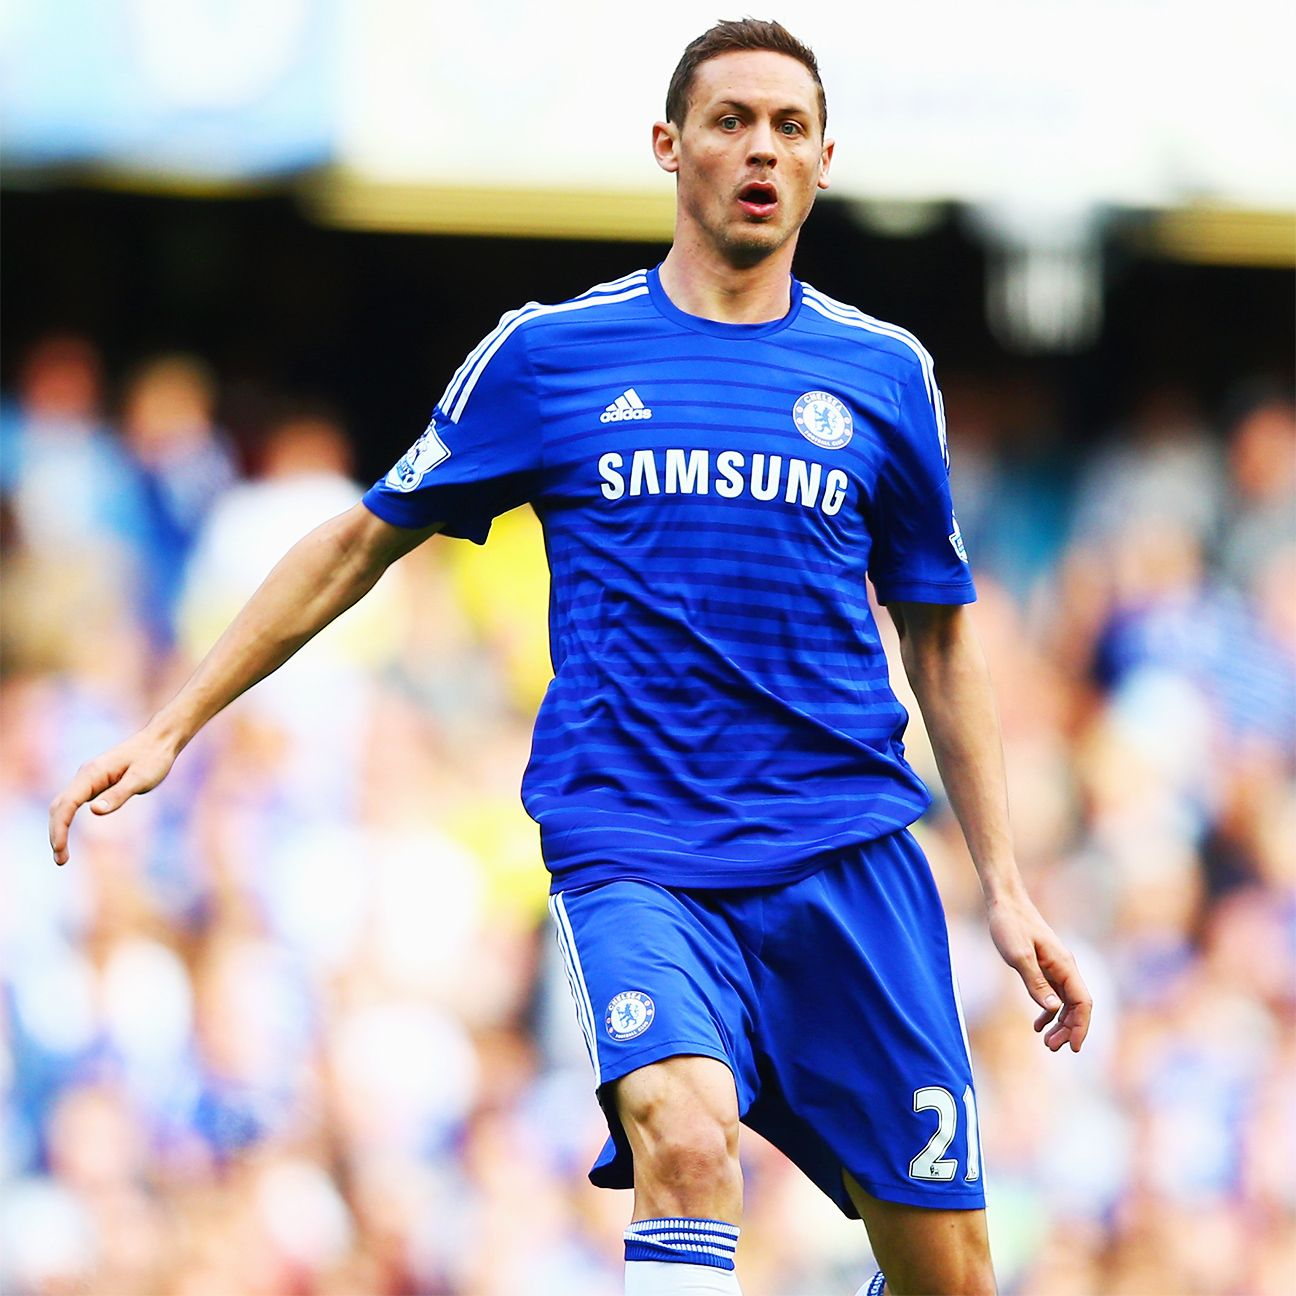 Since re-joining Chelsea in January, Nemanja Matic has become a mainstay in the Blues' starting XI.